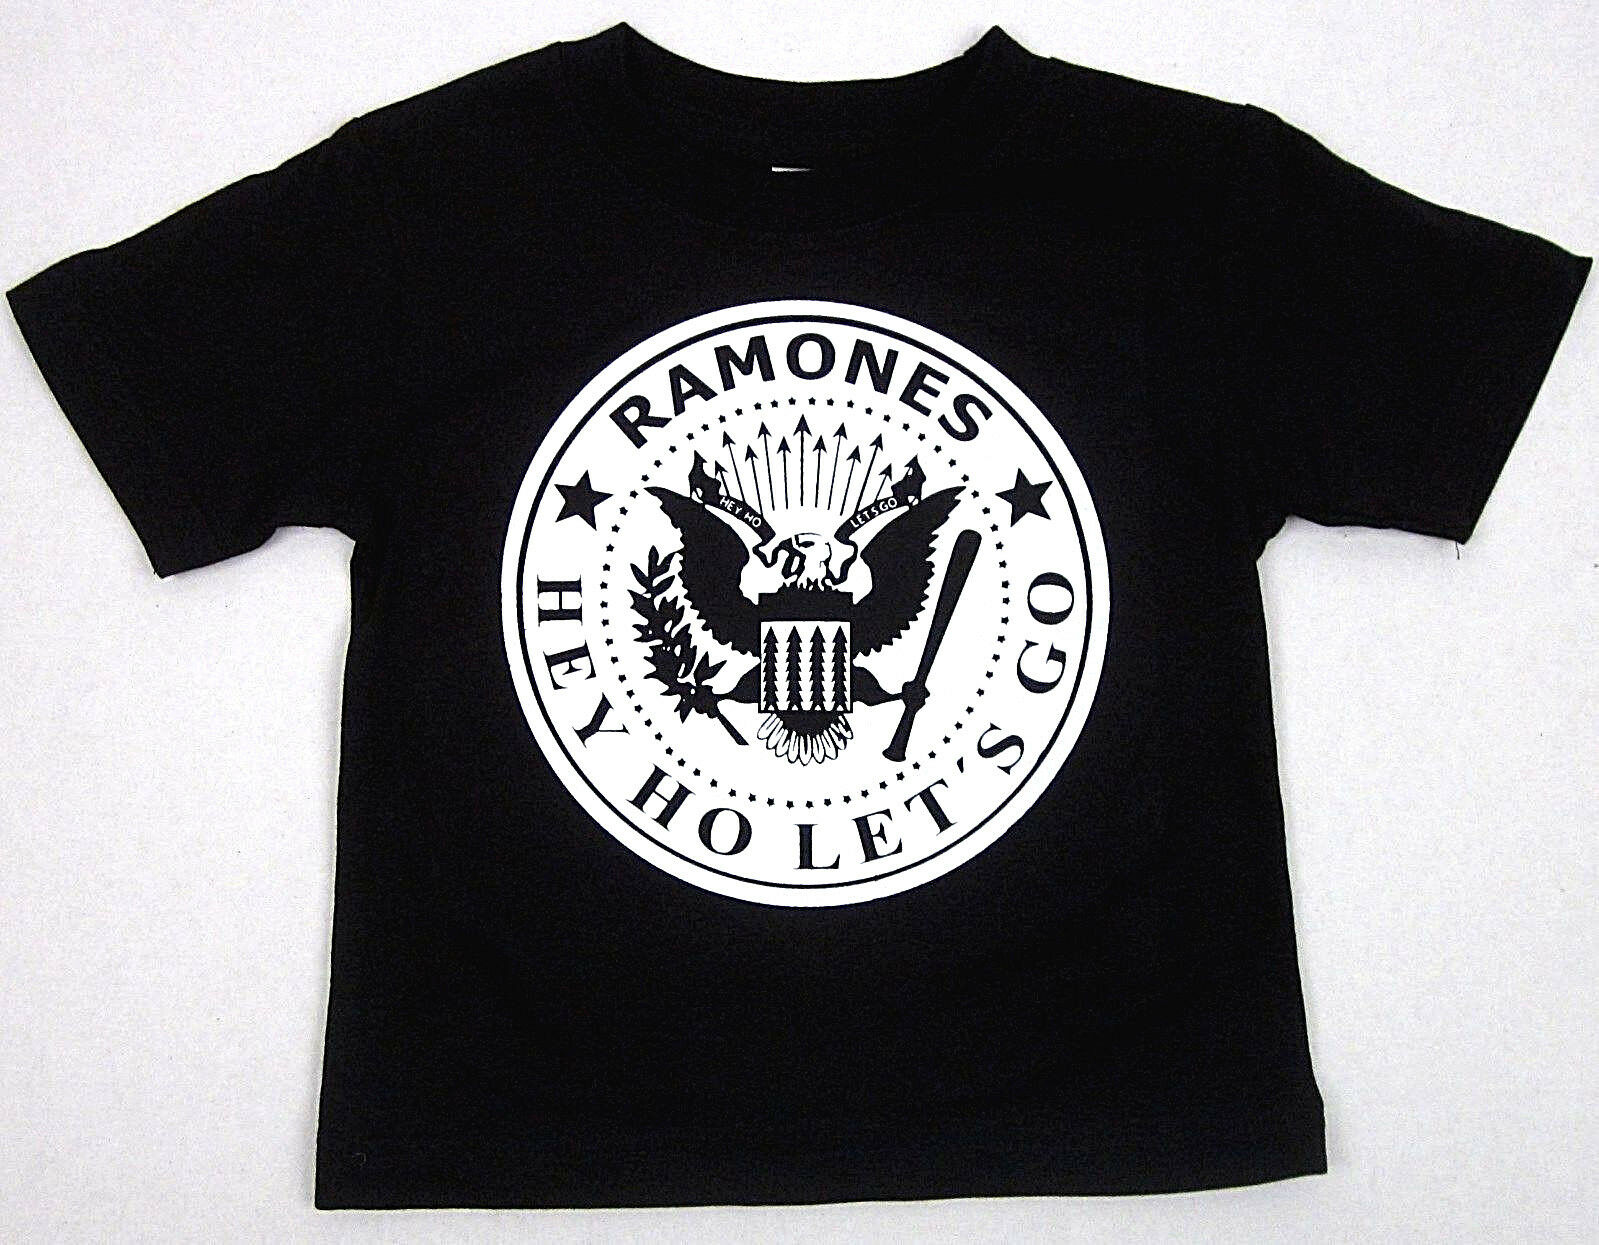 The Official Online store for the Ramones. Featuring music, apparel, accessories, Ramones collector's items and more.